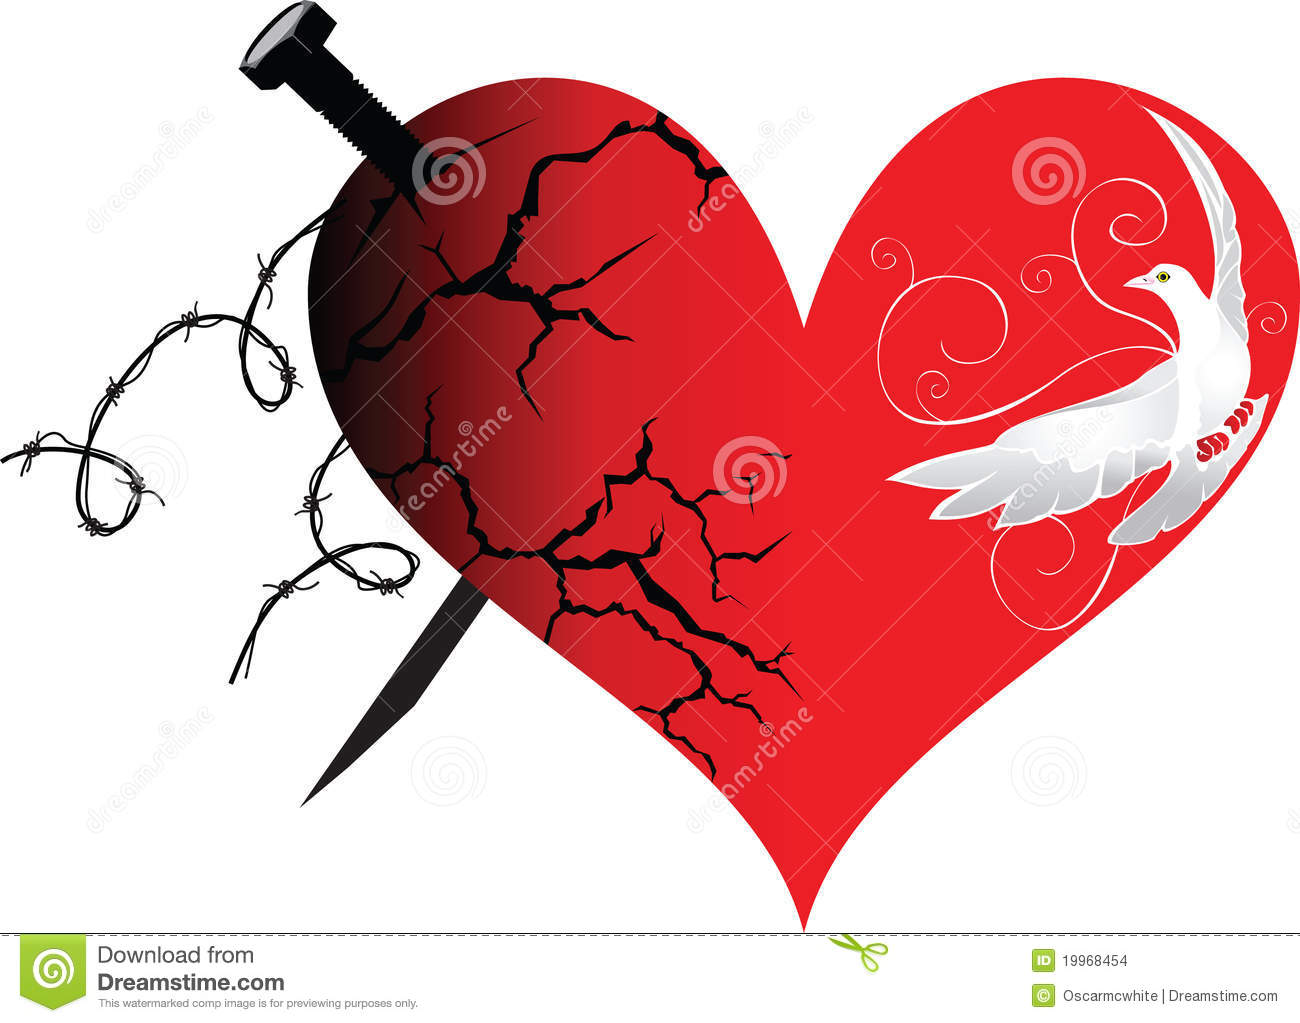 The heart in good and evil sto...